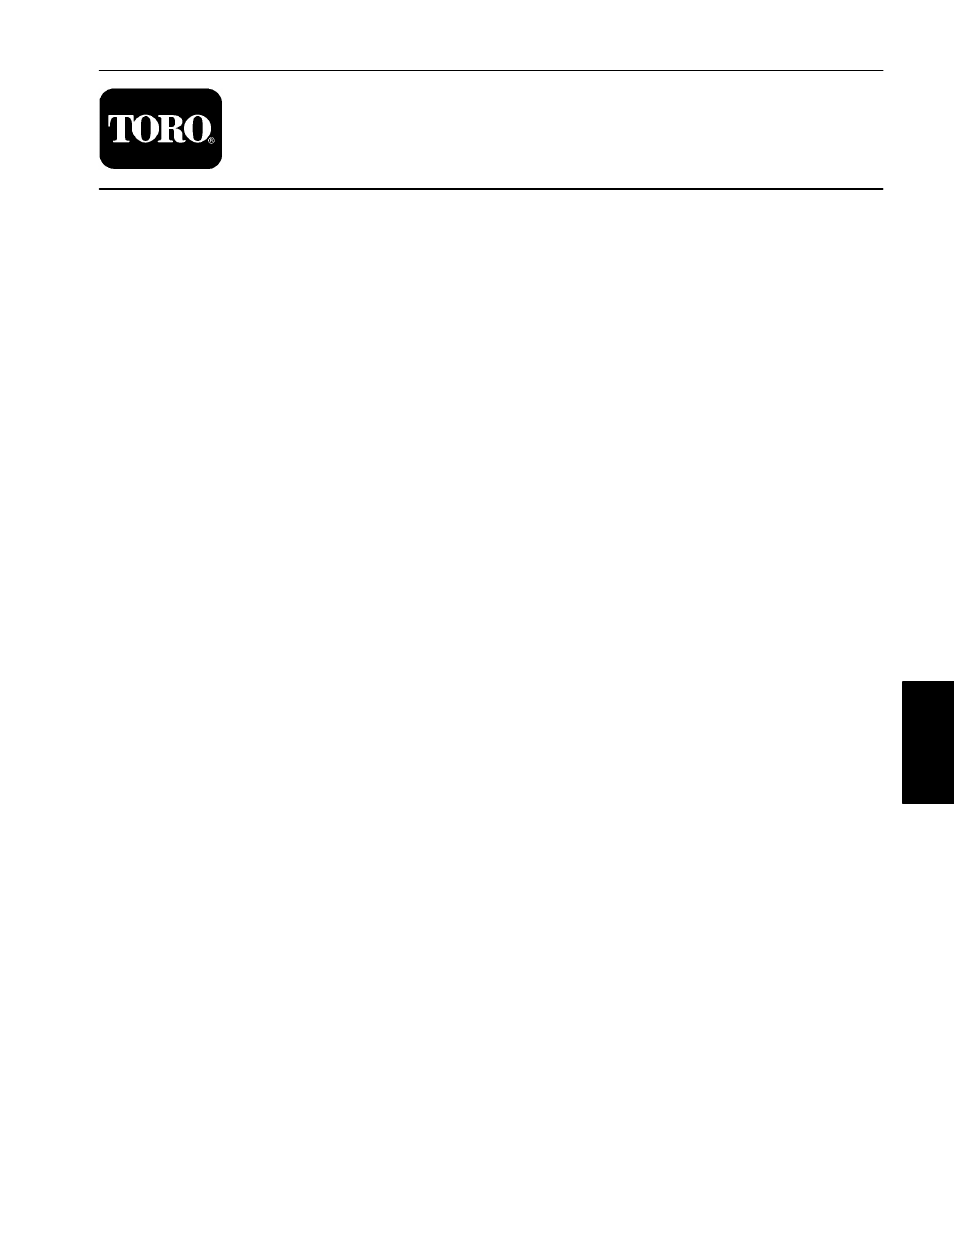 Wiring diagram for nissan sentra stereo